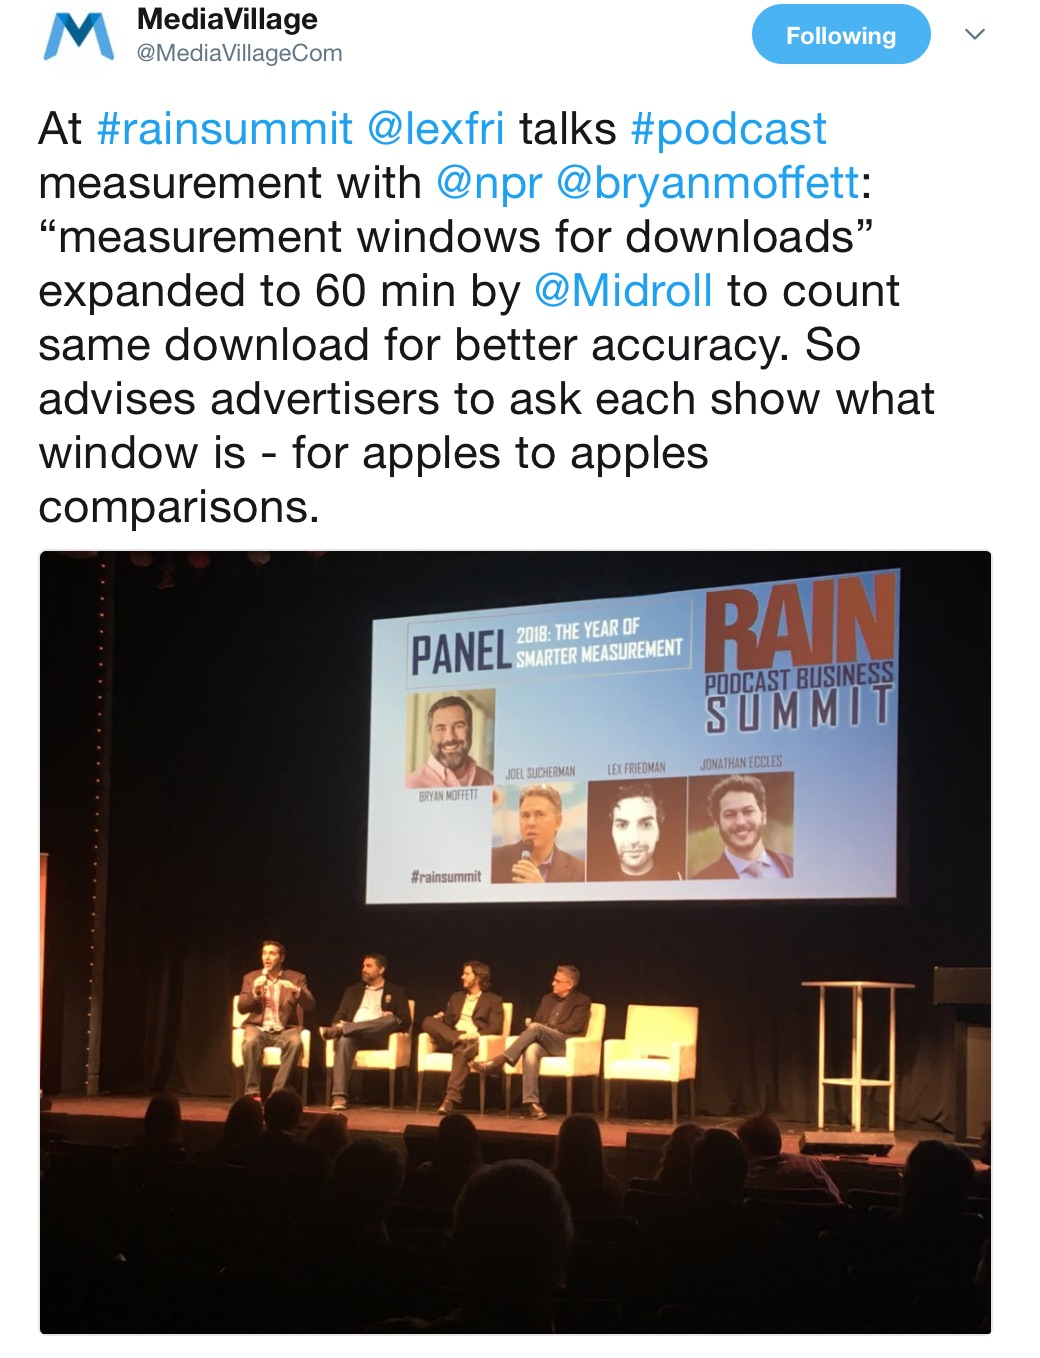 """MediaVillage_on_Twitter___At__rainsummit__lexfri_talks__podcast_measurement_with__npr__bryanmoffett__""""measurement_windows_for_downloads""""_expanded_to_60_min_by__Midroll_to_count_same_download_for_better_accuracy__So_advises_advertisers_to_as.jpg"""